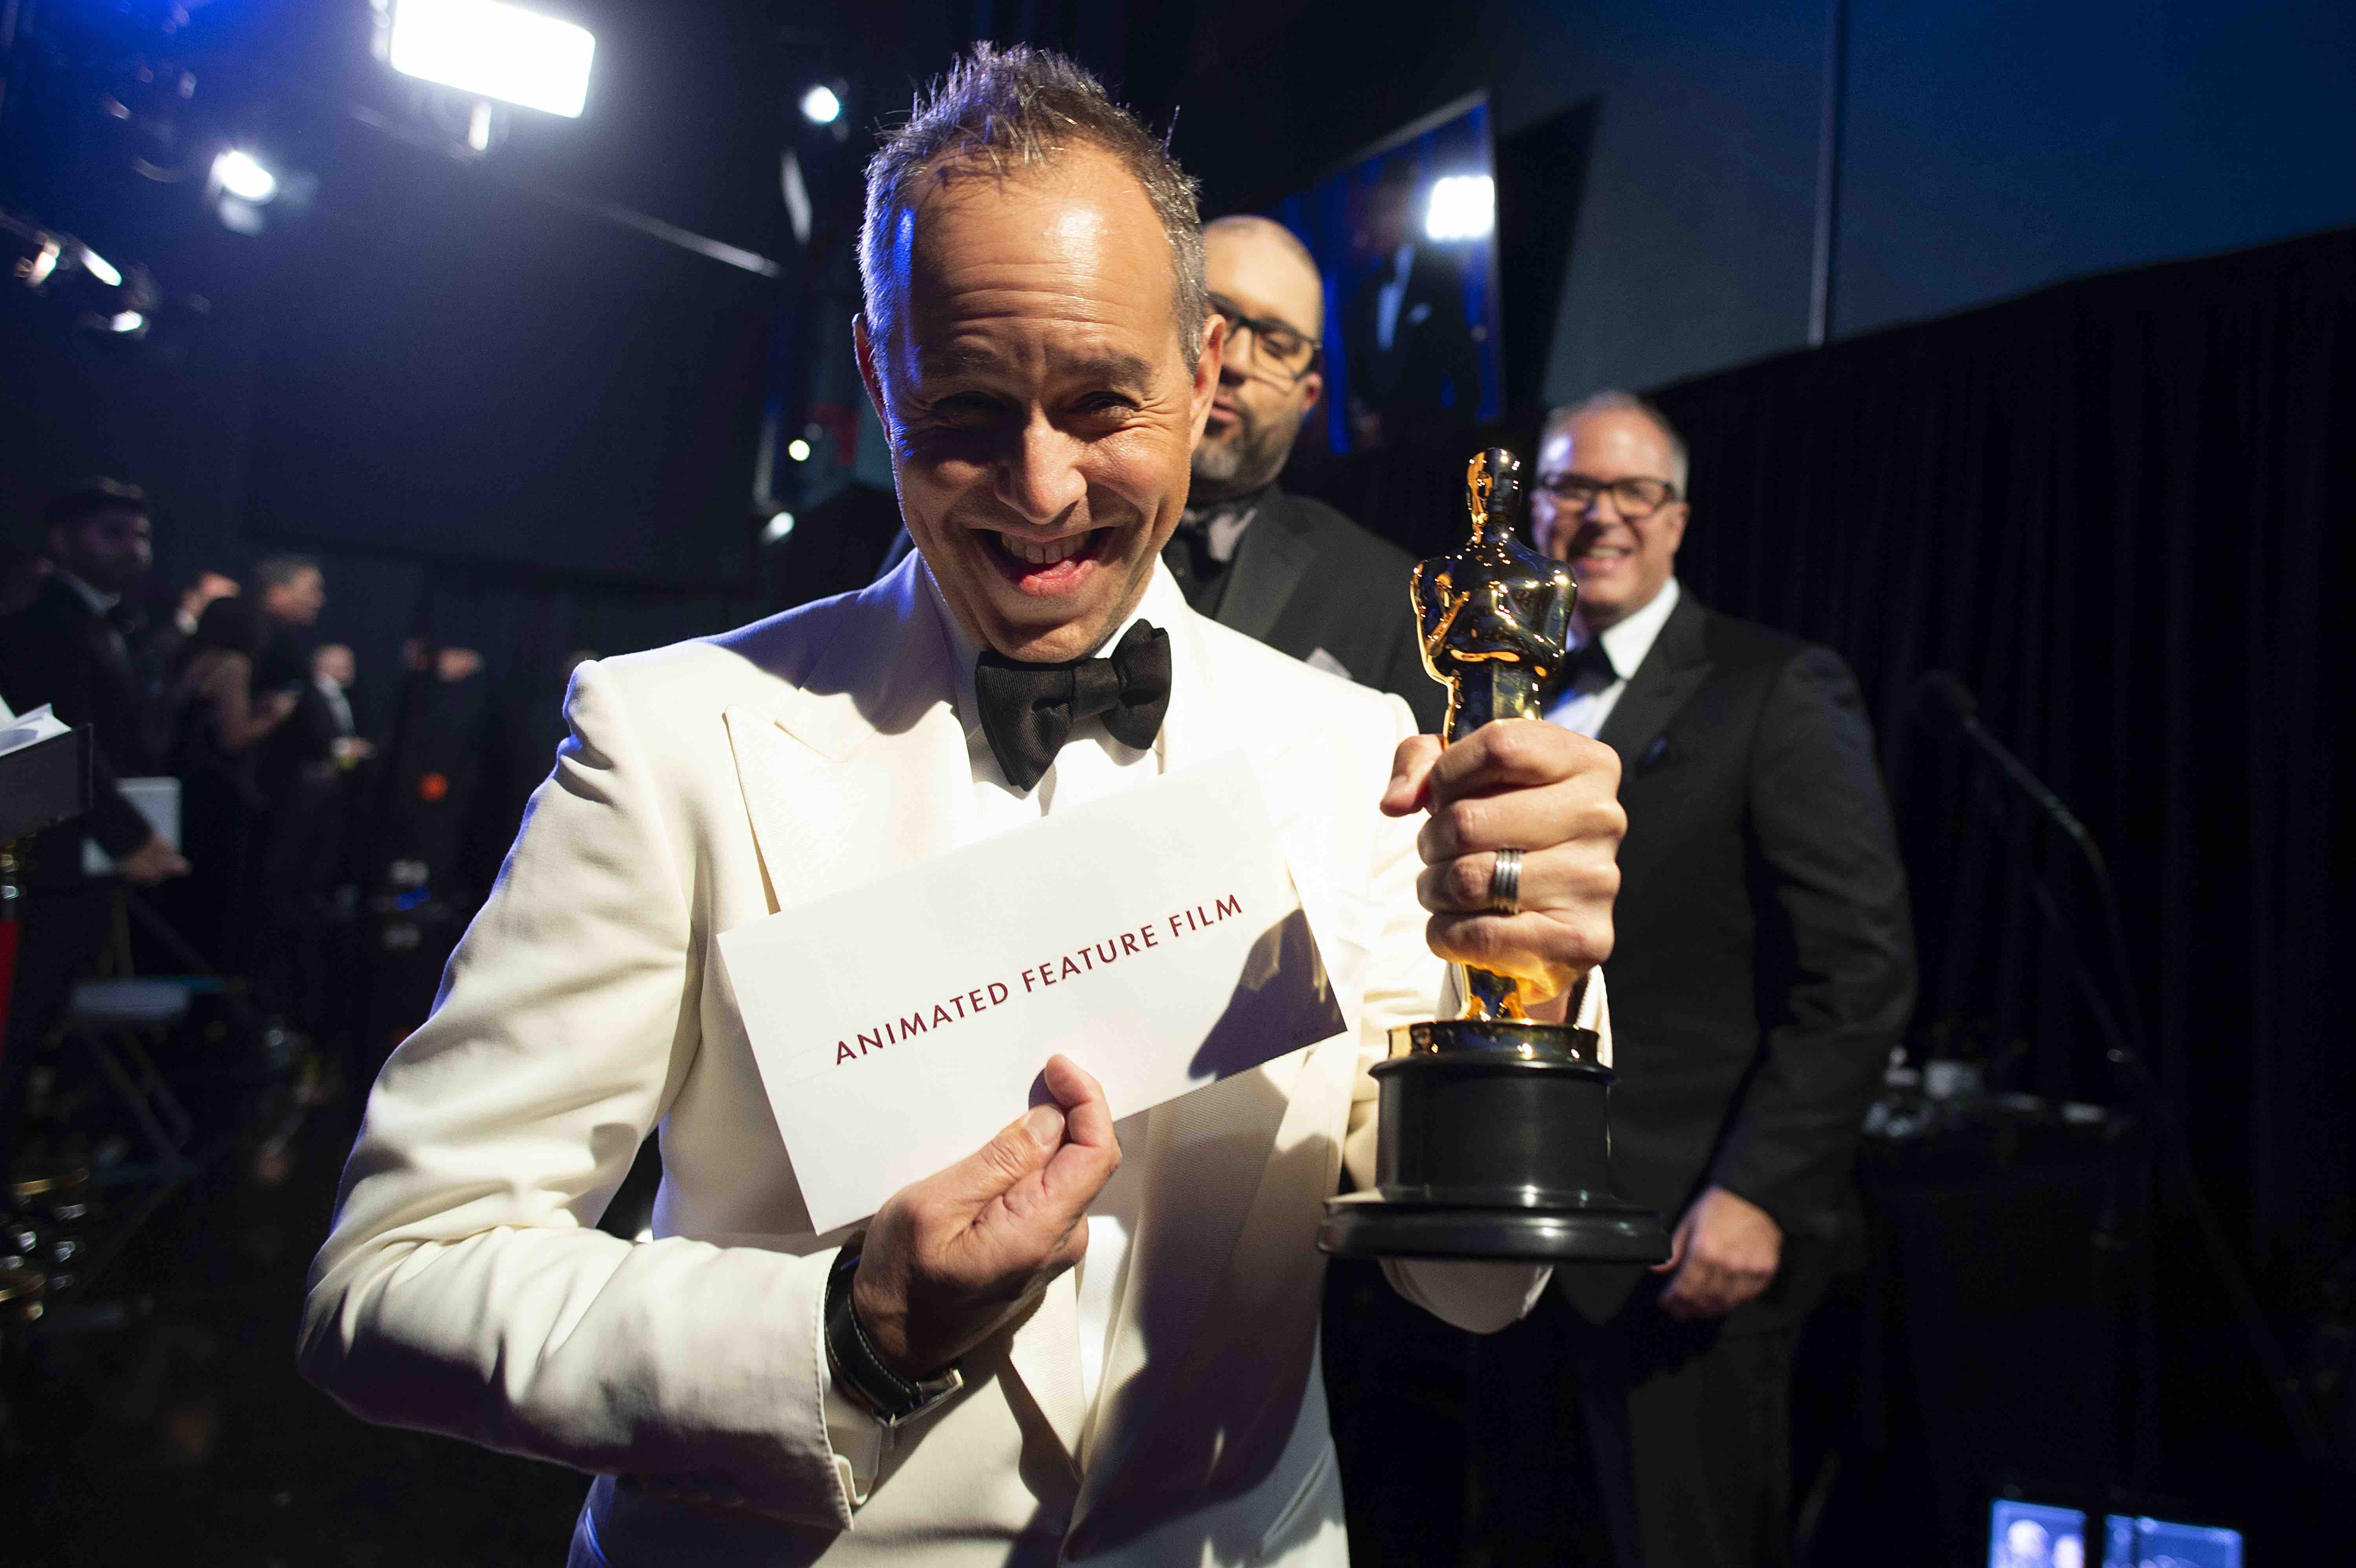 'Toy Story 4' Producer Jonas Rivera Becomes First U.S. Born Latino to Win Multiple Oscars